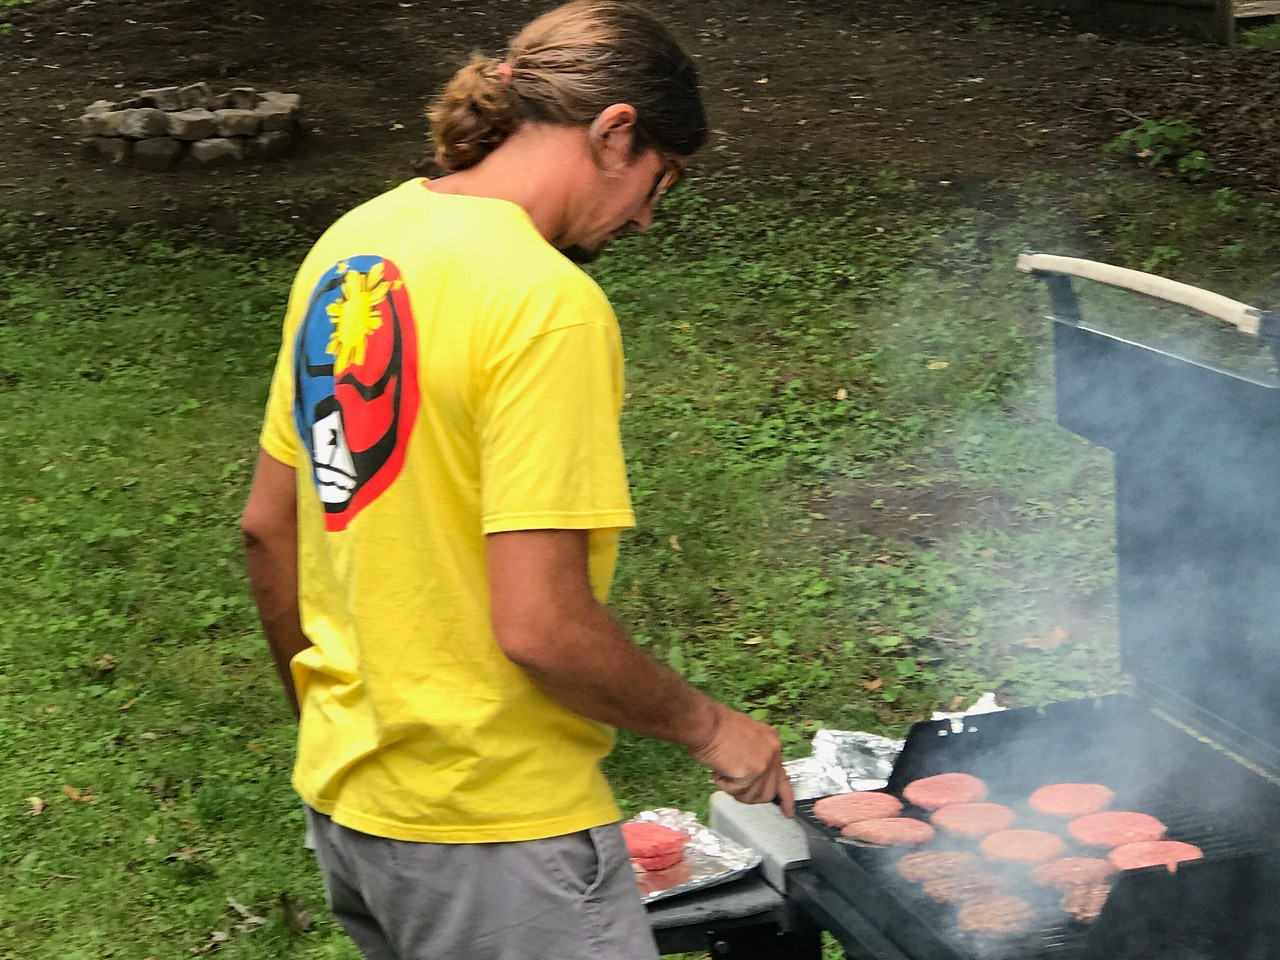 Robbie cooking the burgers